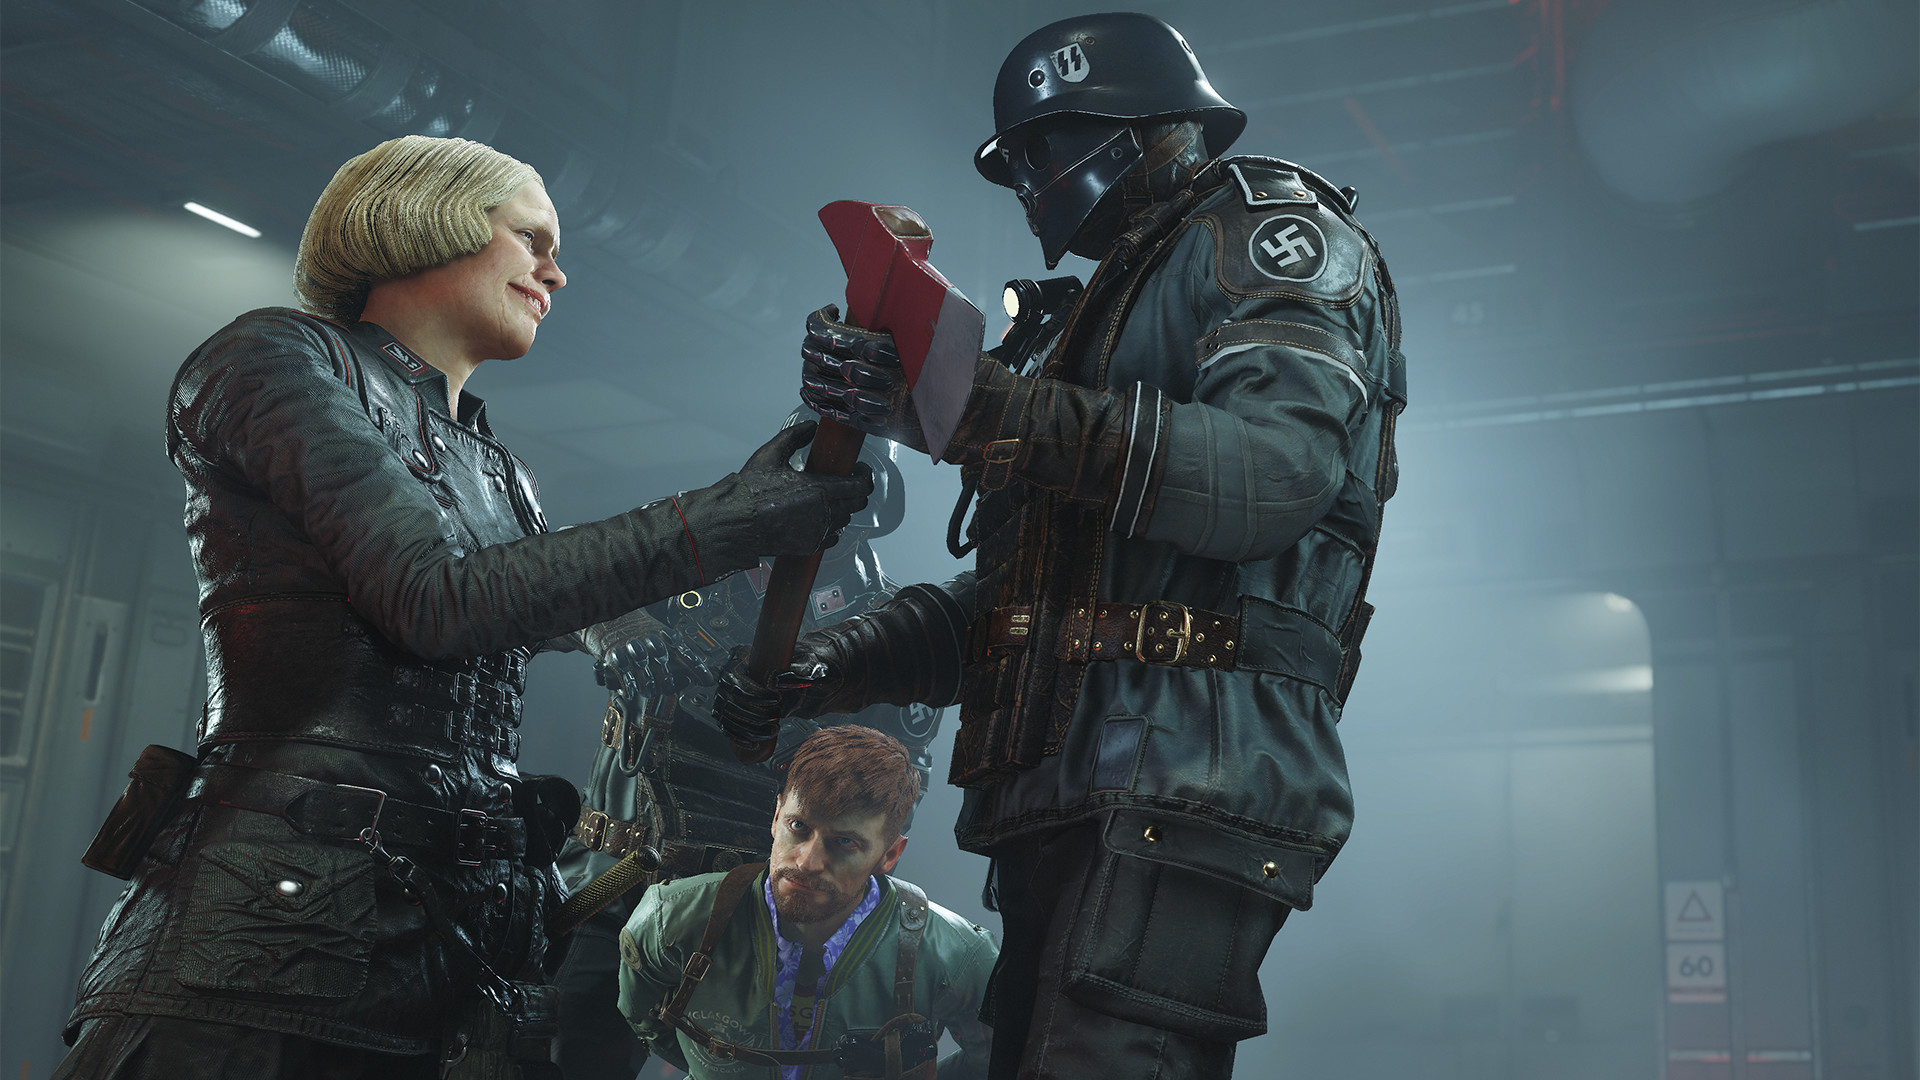 download wolfenstein ii the new colossus-codex cracked full version singlelink iso rar multi 11 language free for pc